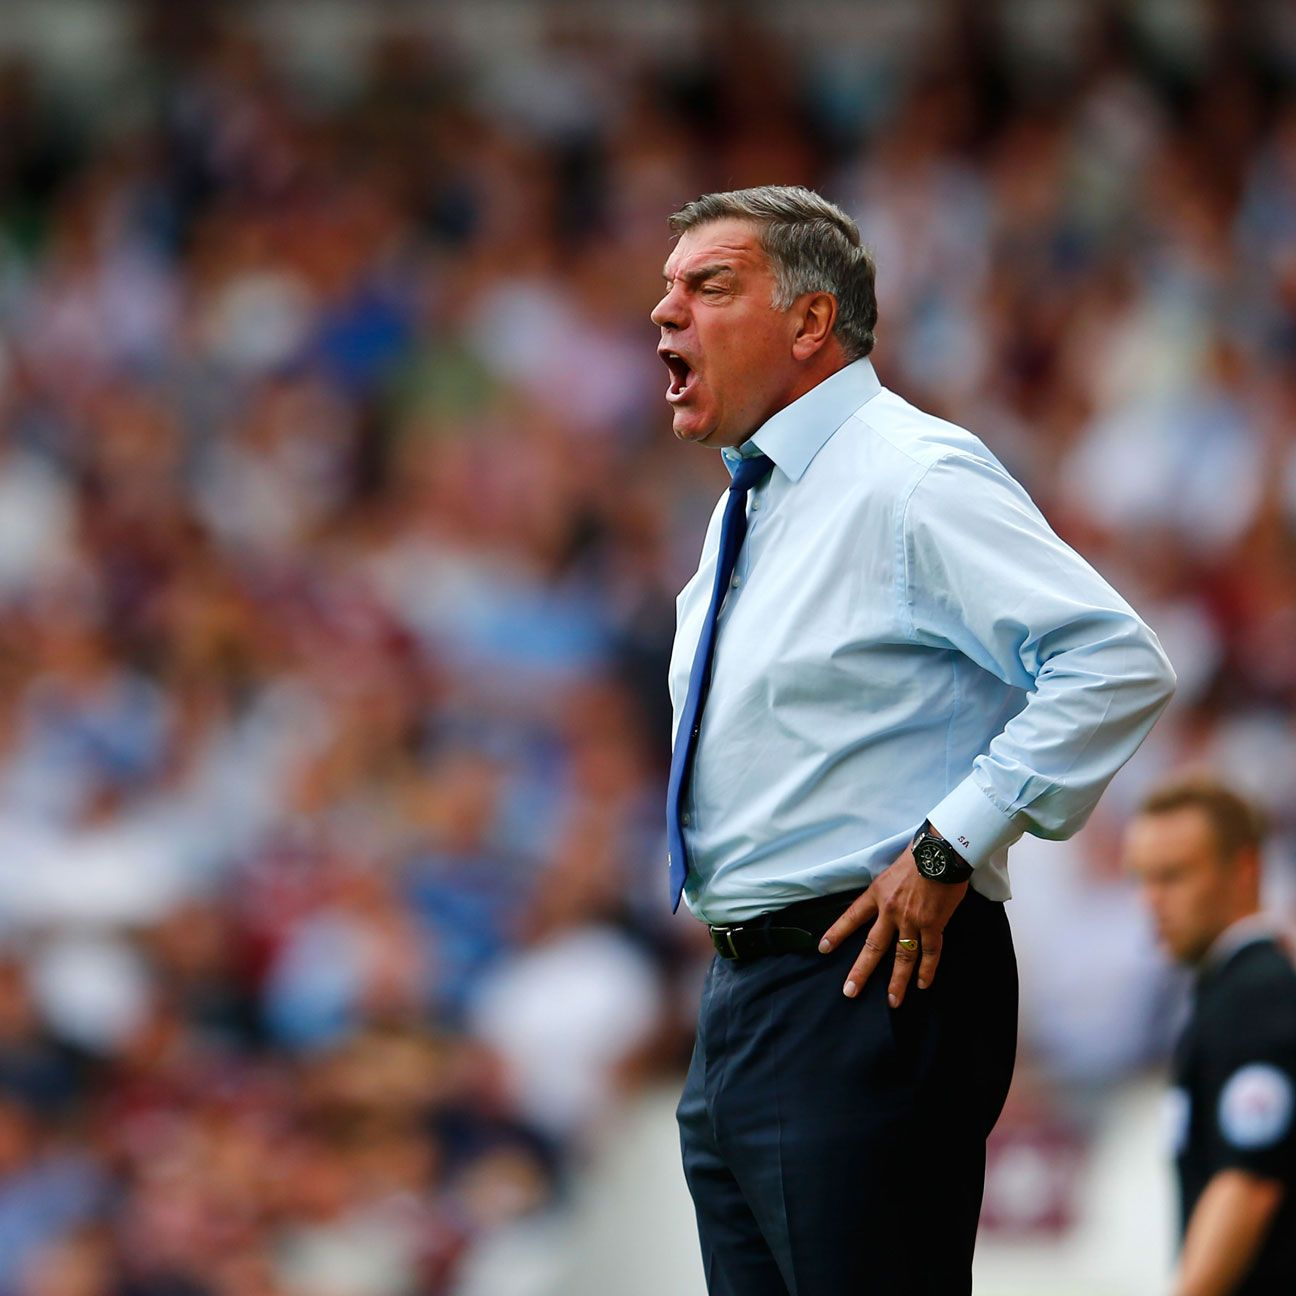 Sam Allardyce's West Ham tenure ended in defeat at Newcastle.